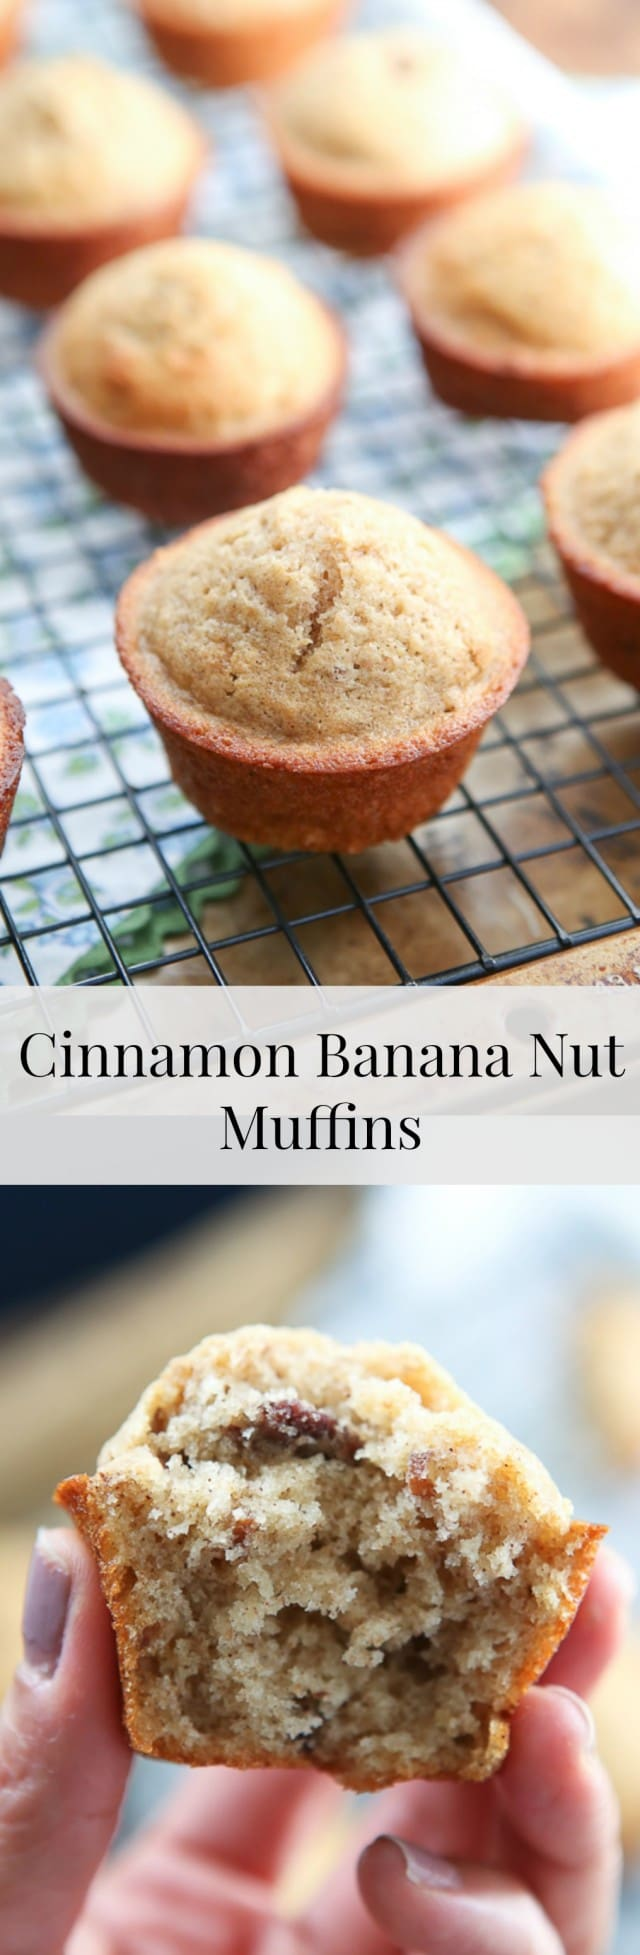 Crunchy pecans, cinnamon and Greek yogurt make these Cinnamon Banana Nut Muffins a treat your whole family will love. #ad